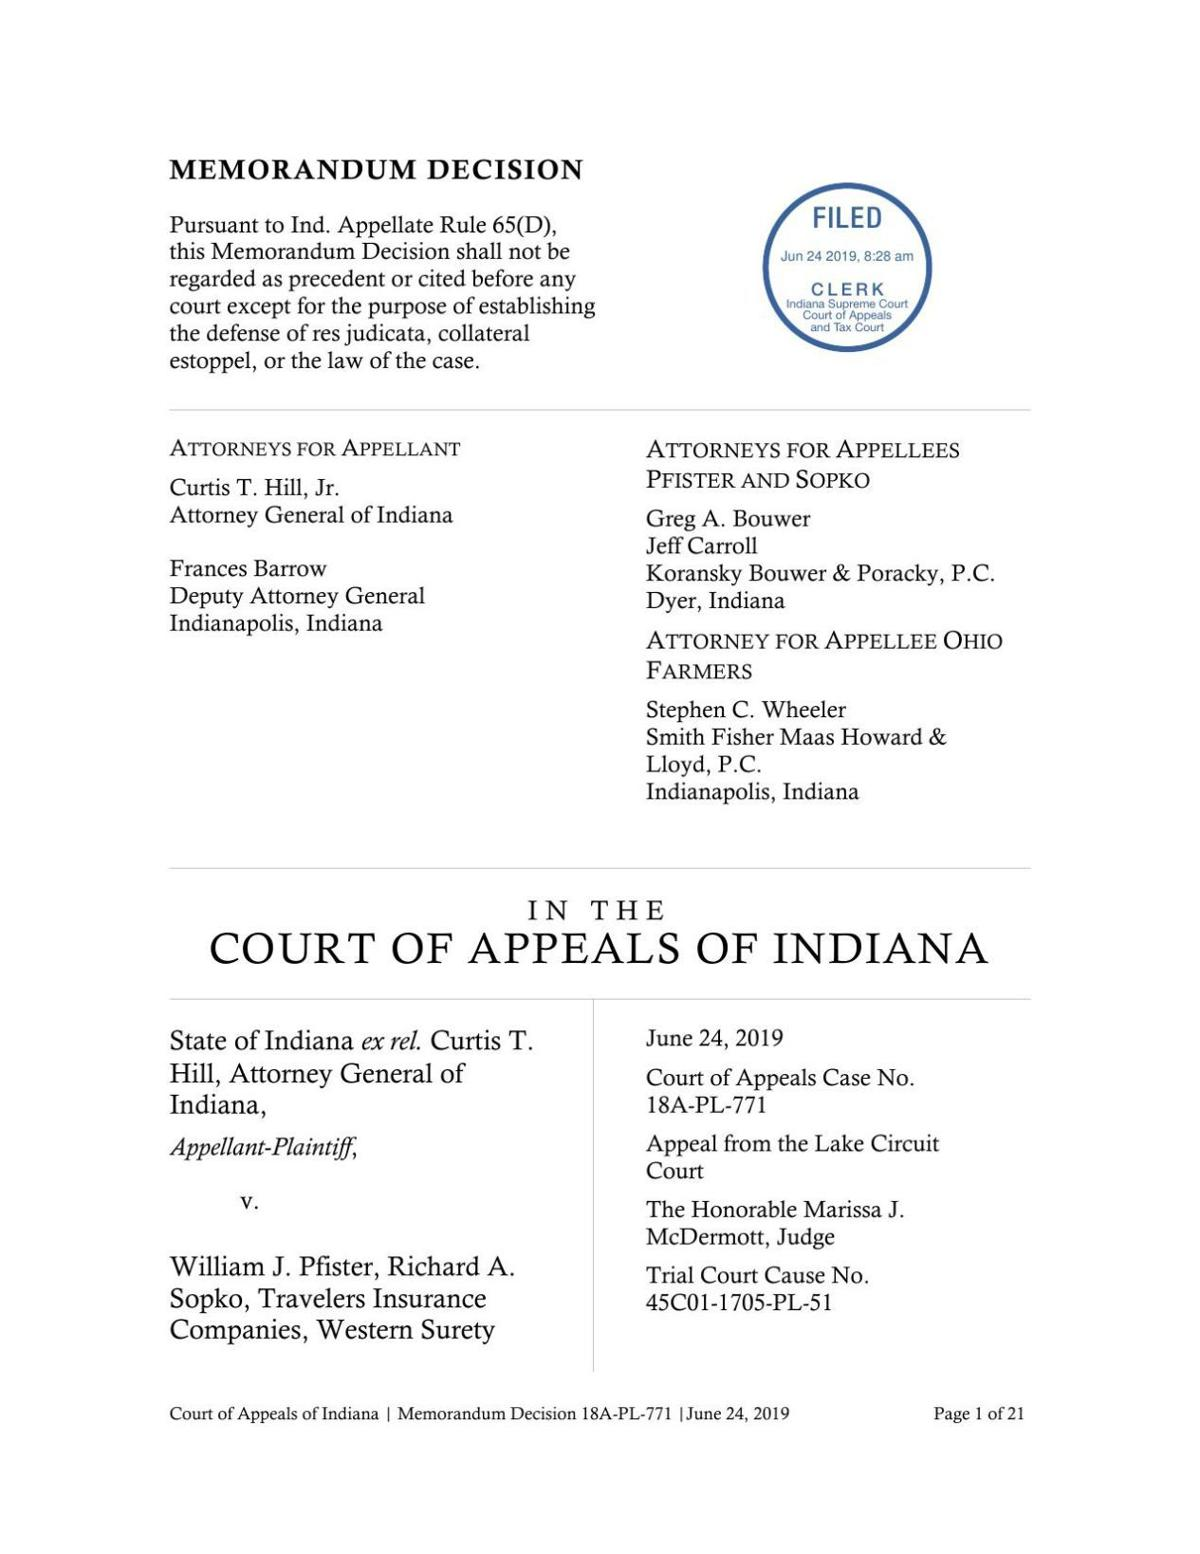 State v. Pfister and Sopko ruling of Indiana Court of Appeals